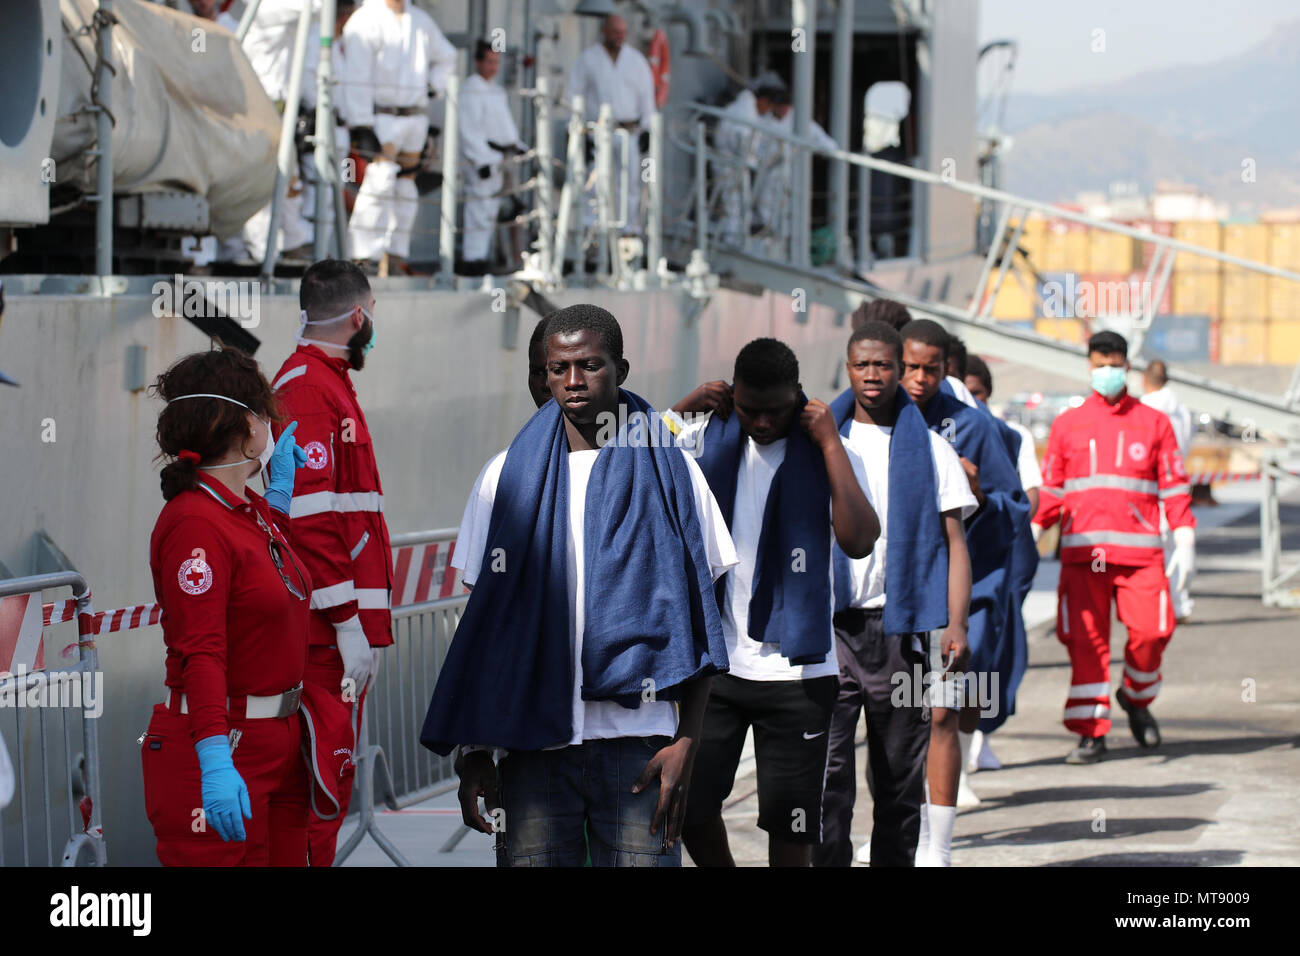 Palermo, the stages of disembarkation of 600 migrants at the port of Palermo from the Spanish ship Numancia. 28/05/2018, Palermo, Italy - Stock Image